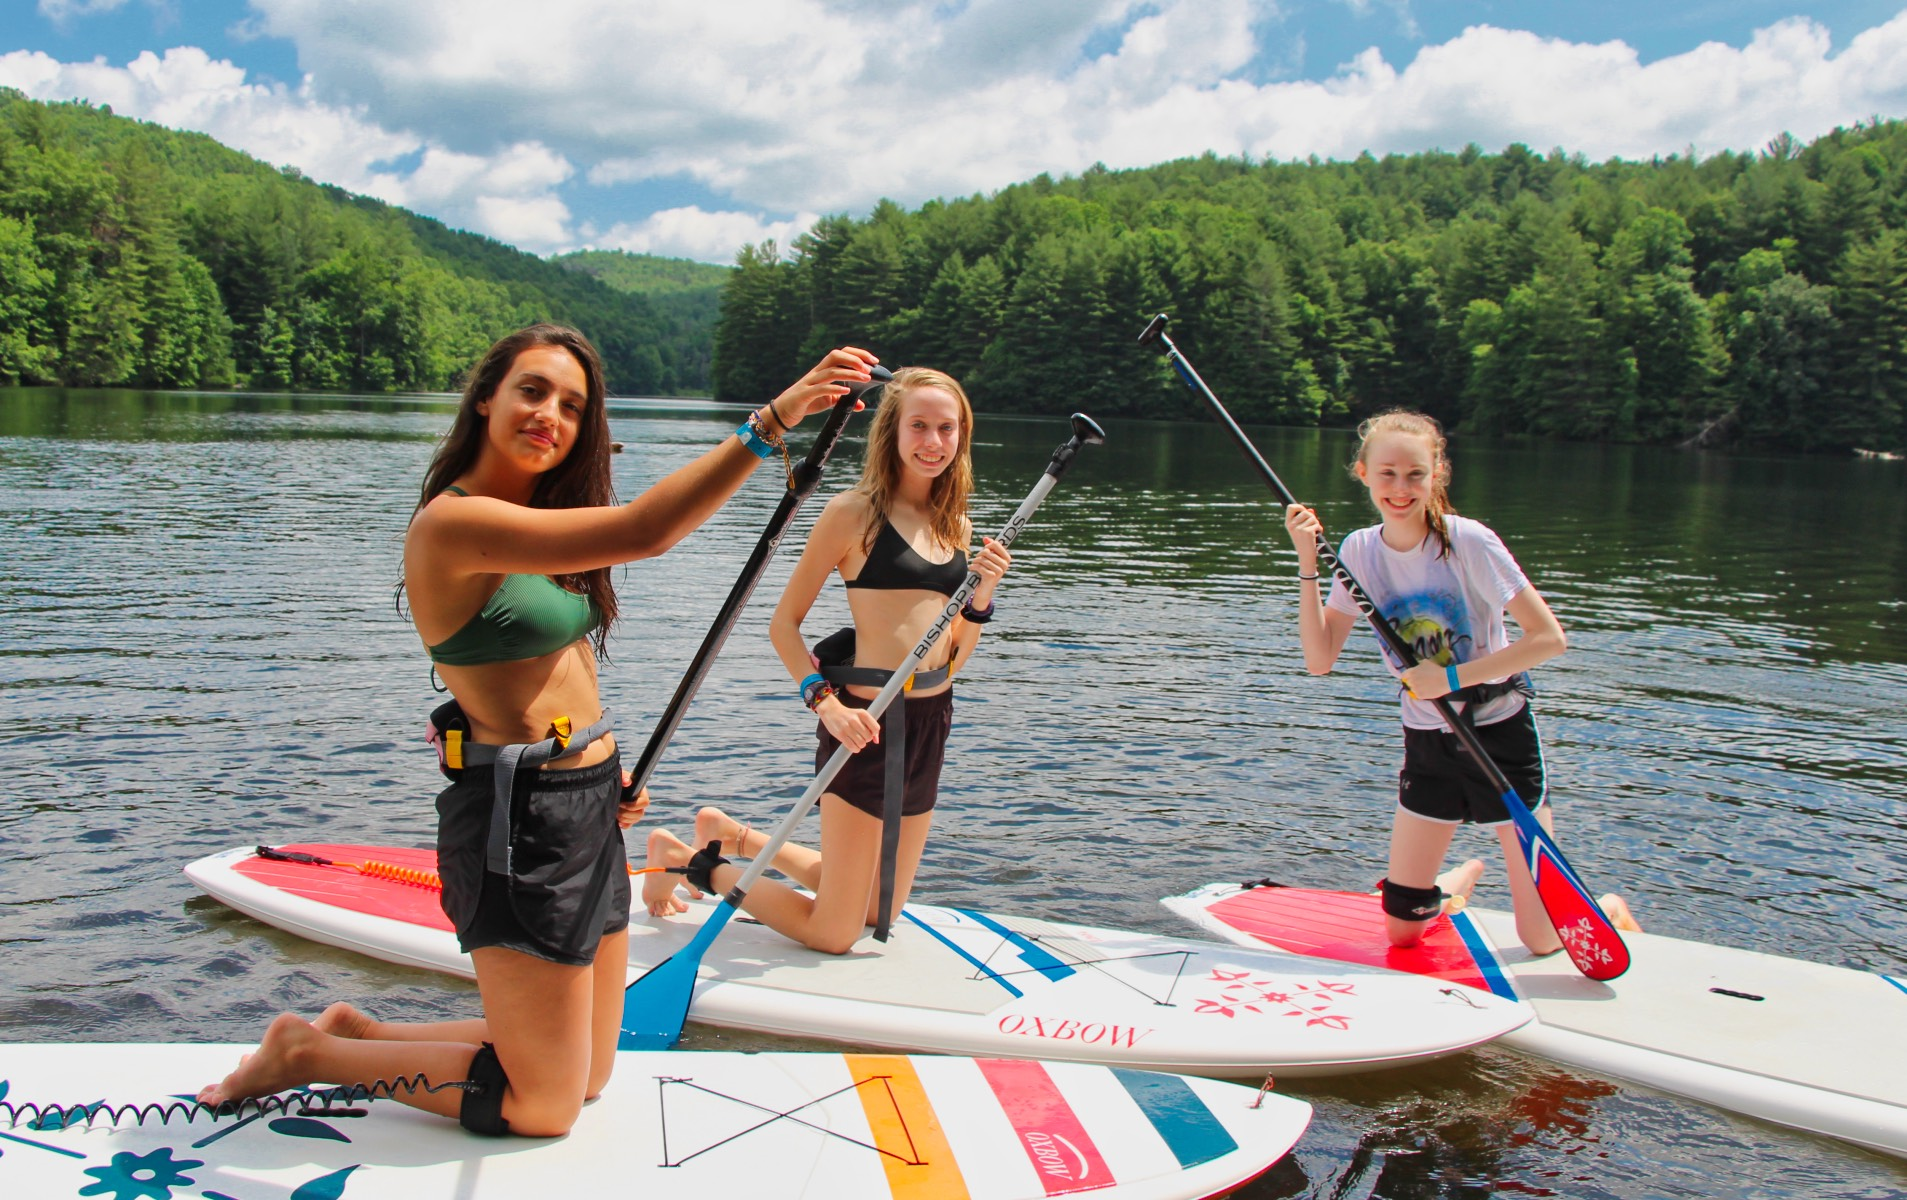 Camp girls paddle boarding